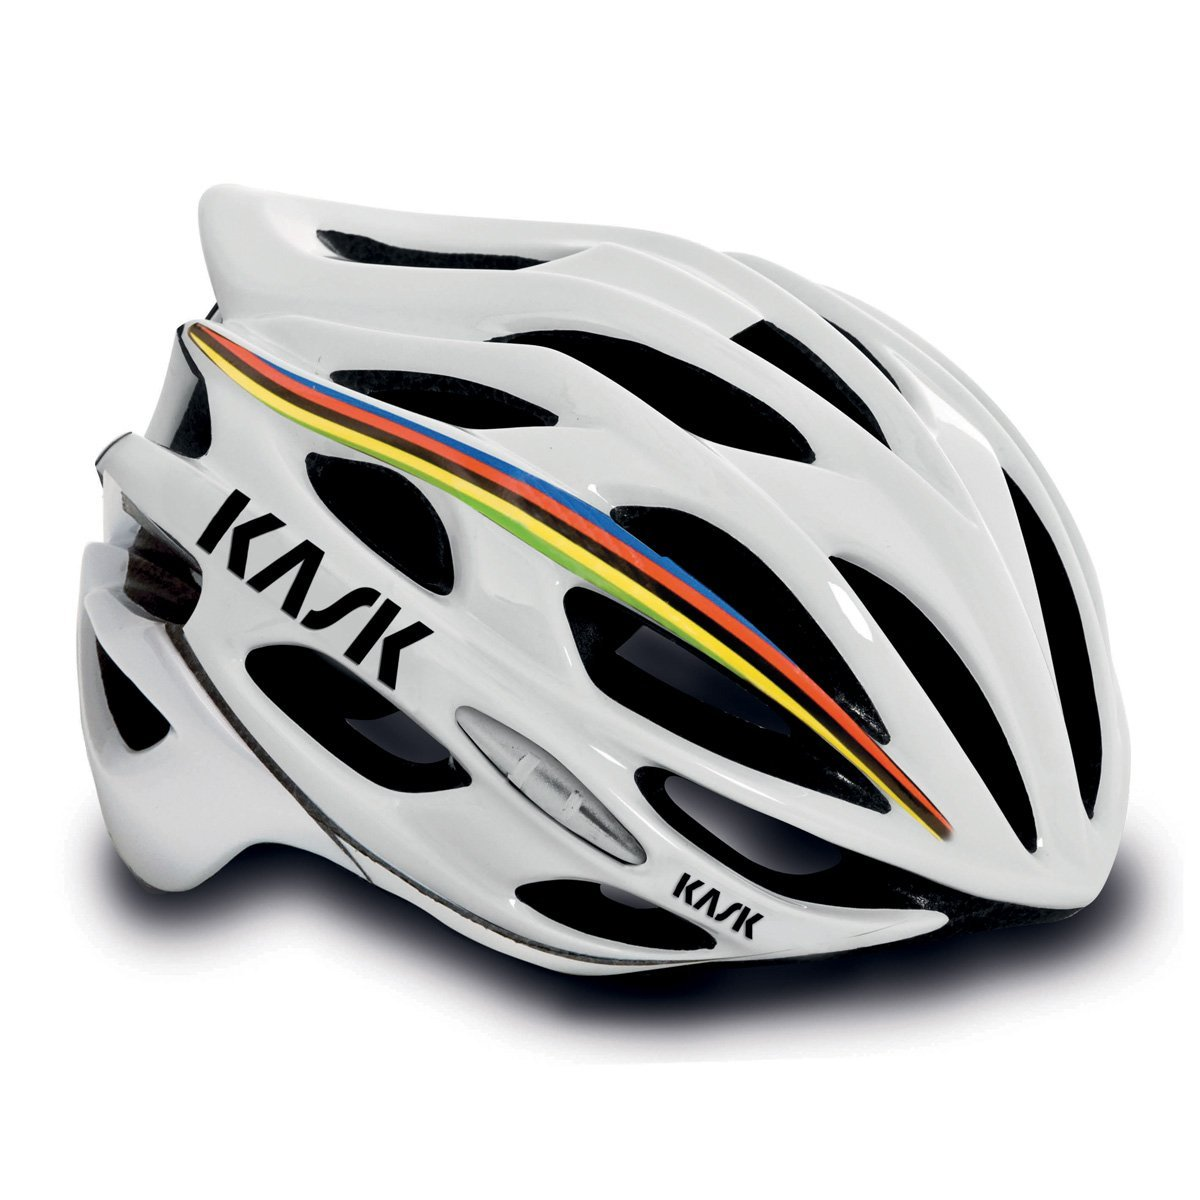 Best Selling Kask Bicycle Helmets